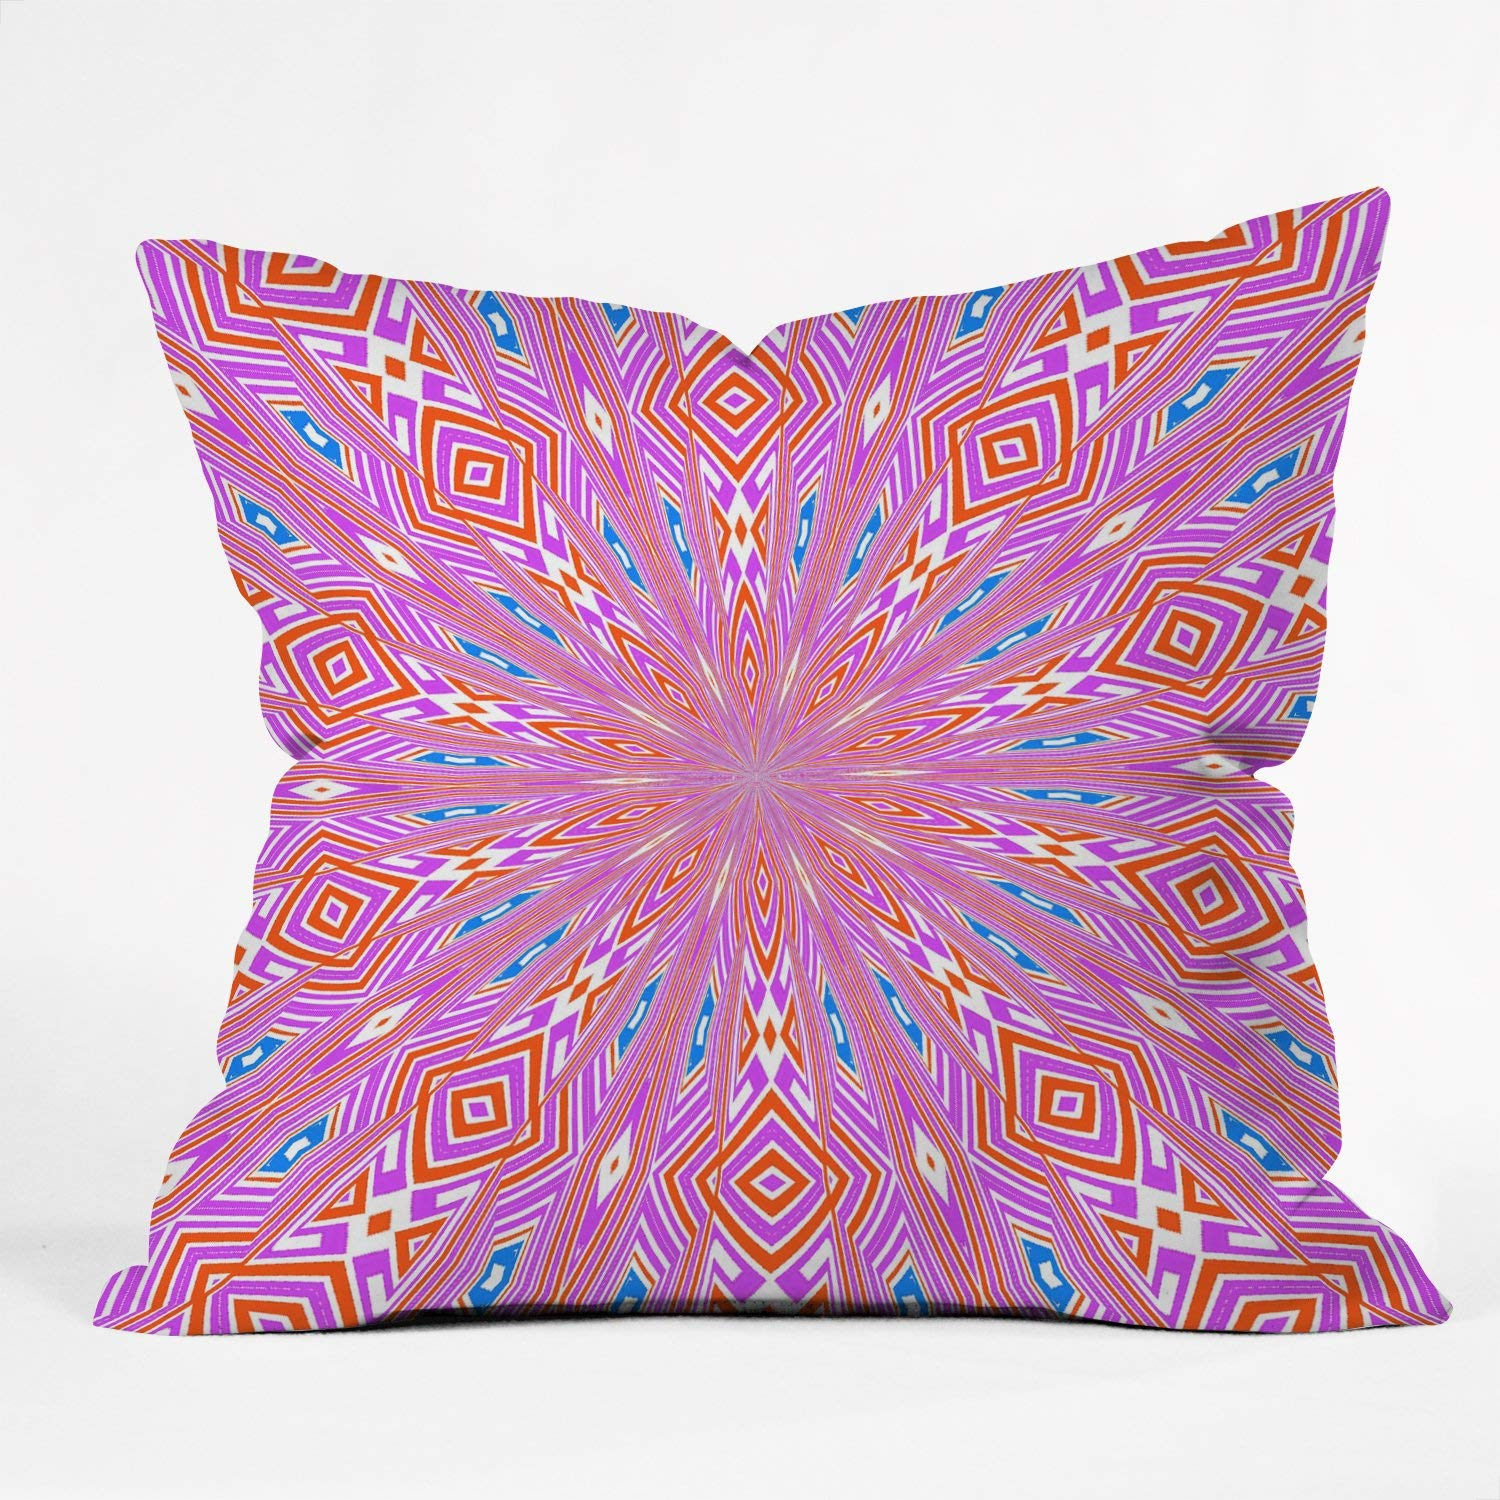 Admirable Amazon Com Urban Aztec Reverse Throw Pillow Covers Home Pdpeps Interior Chair Design Pdpepsorg